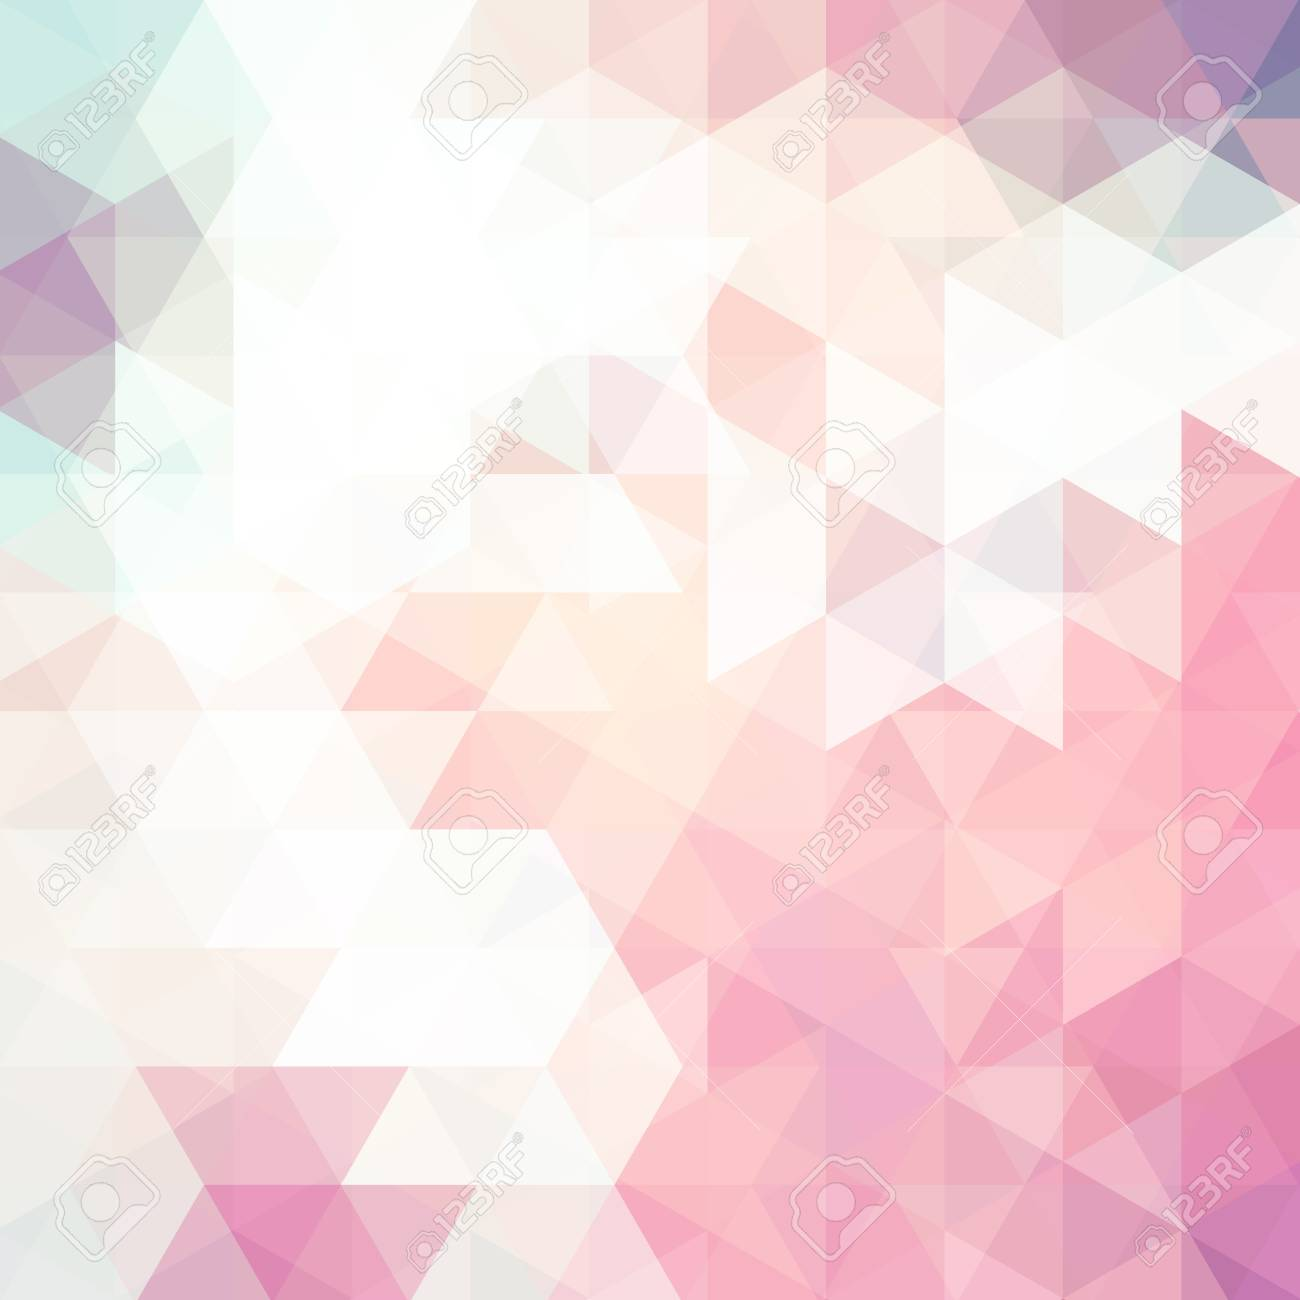 Abstract Background Consisting Of Pastel Pink White Triangles